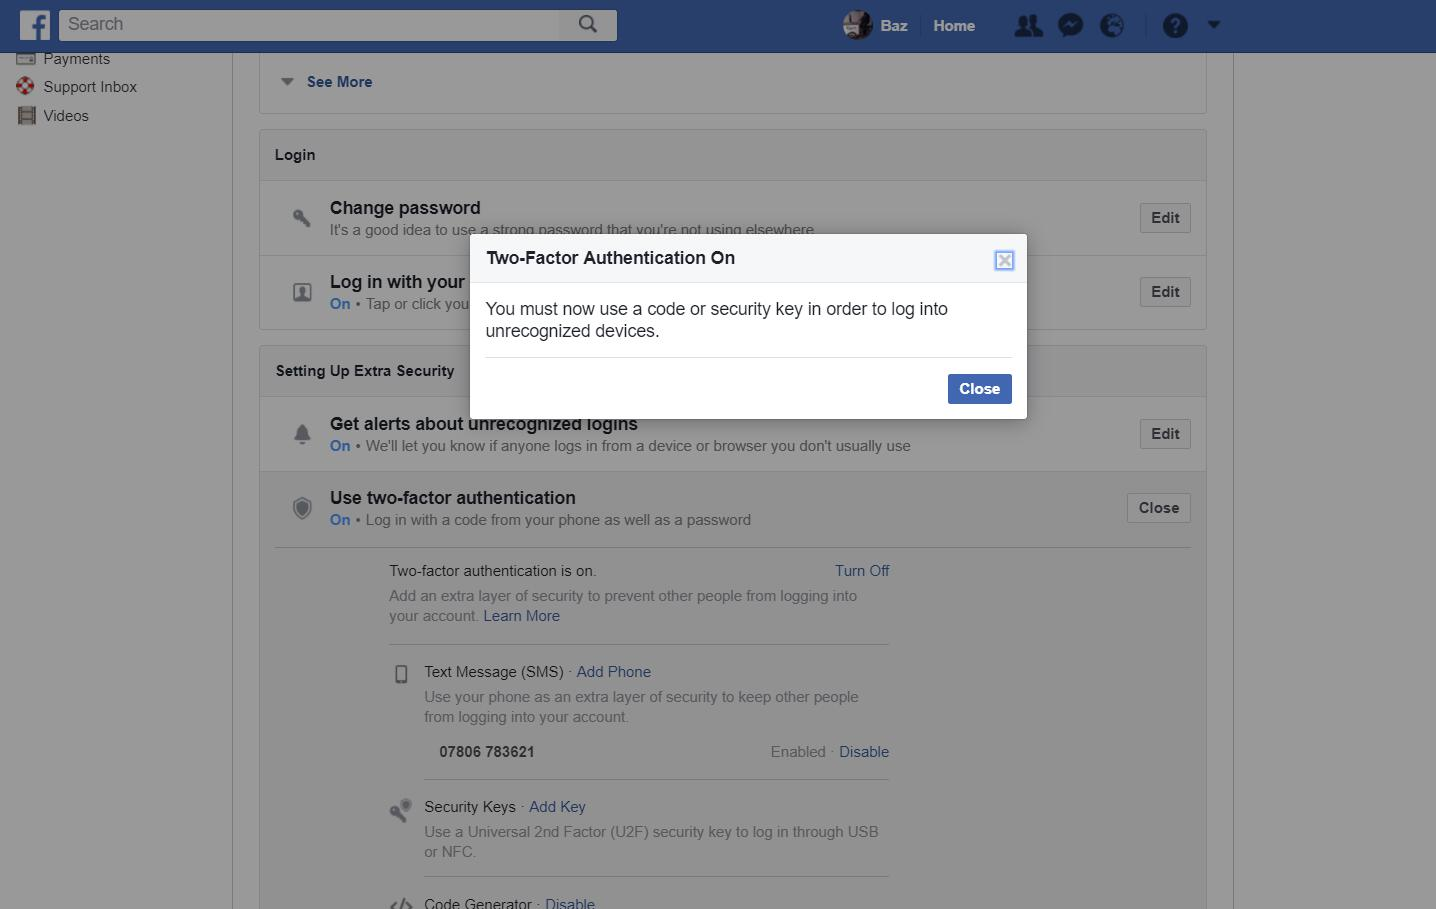 Facebook settings - two-factor authentication enabled